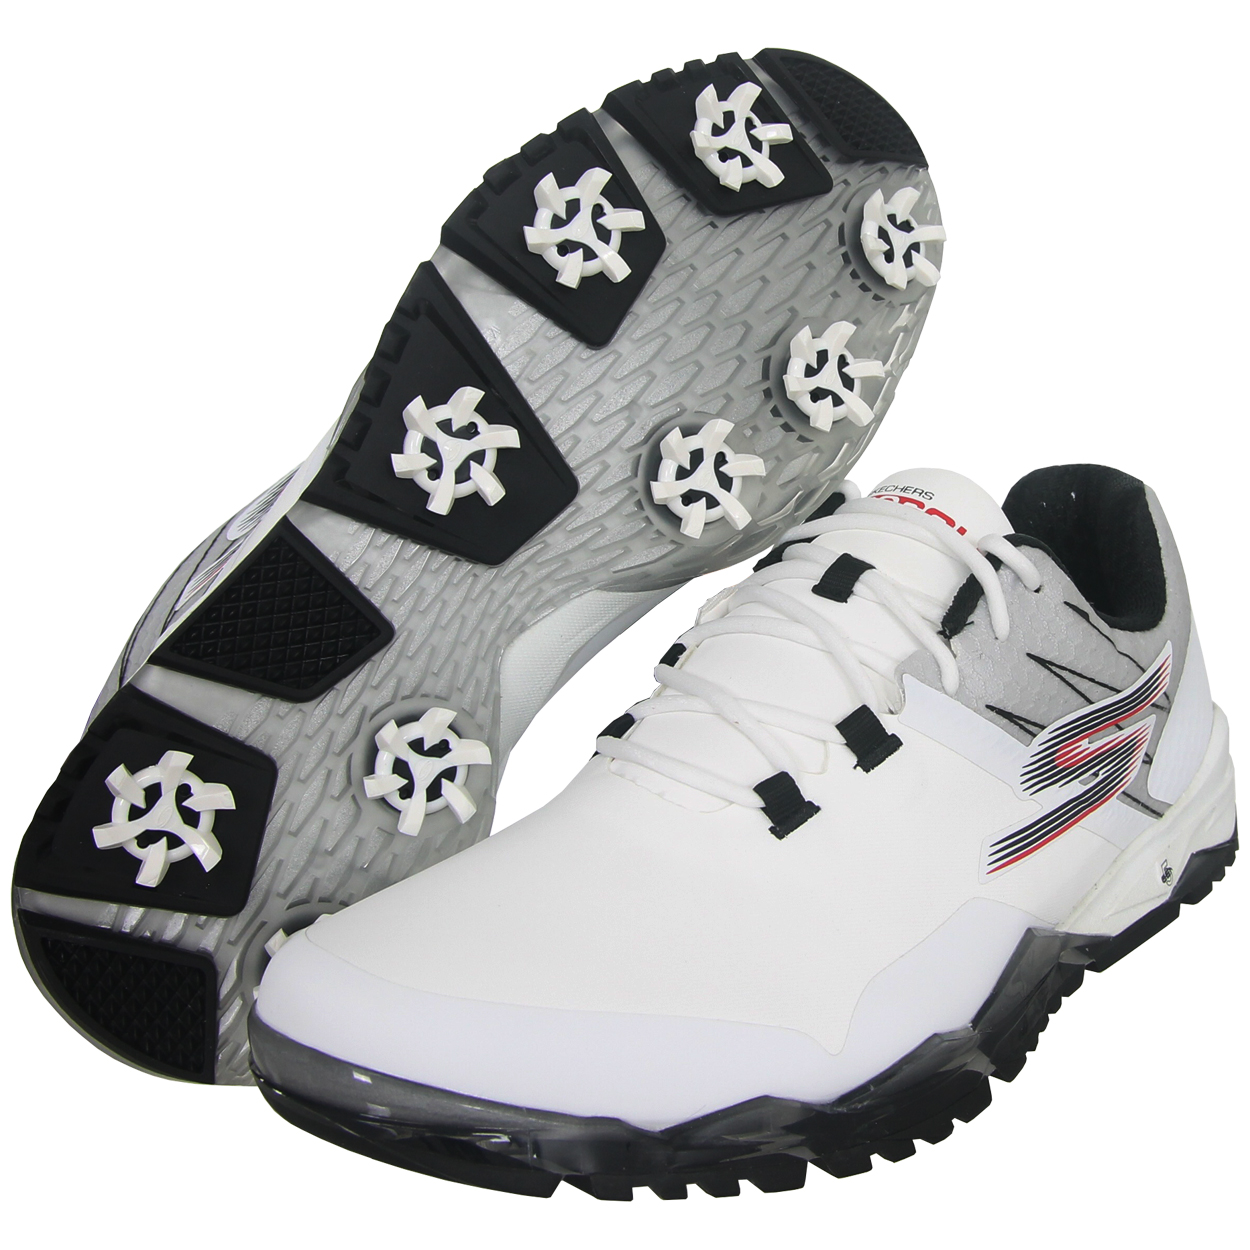 Skechers Golf Shoe Laces